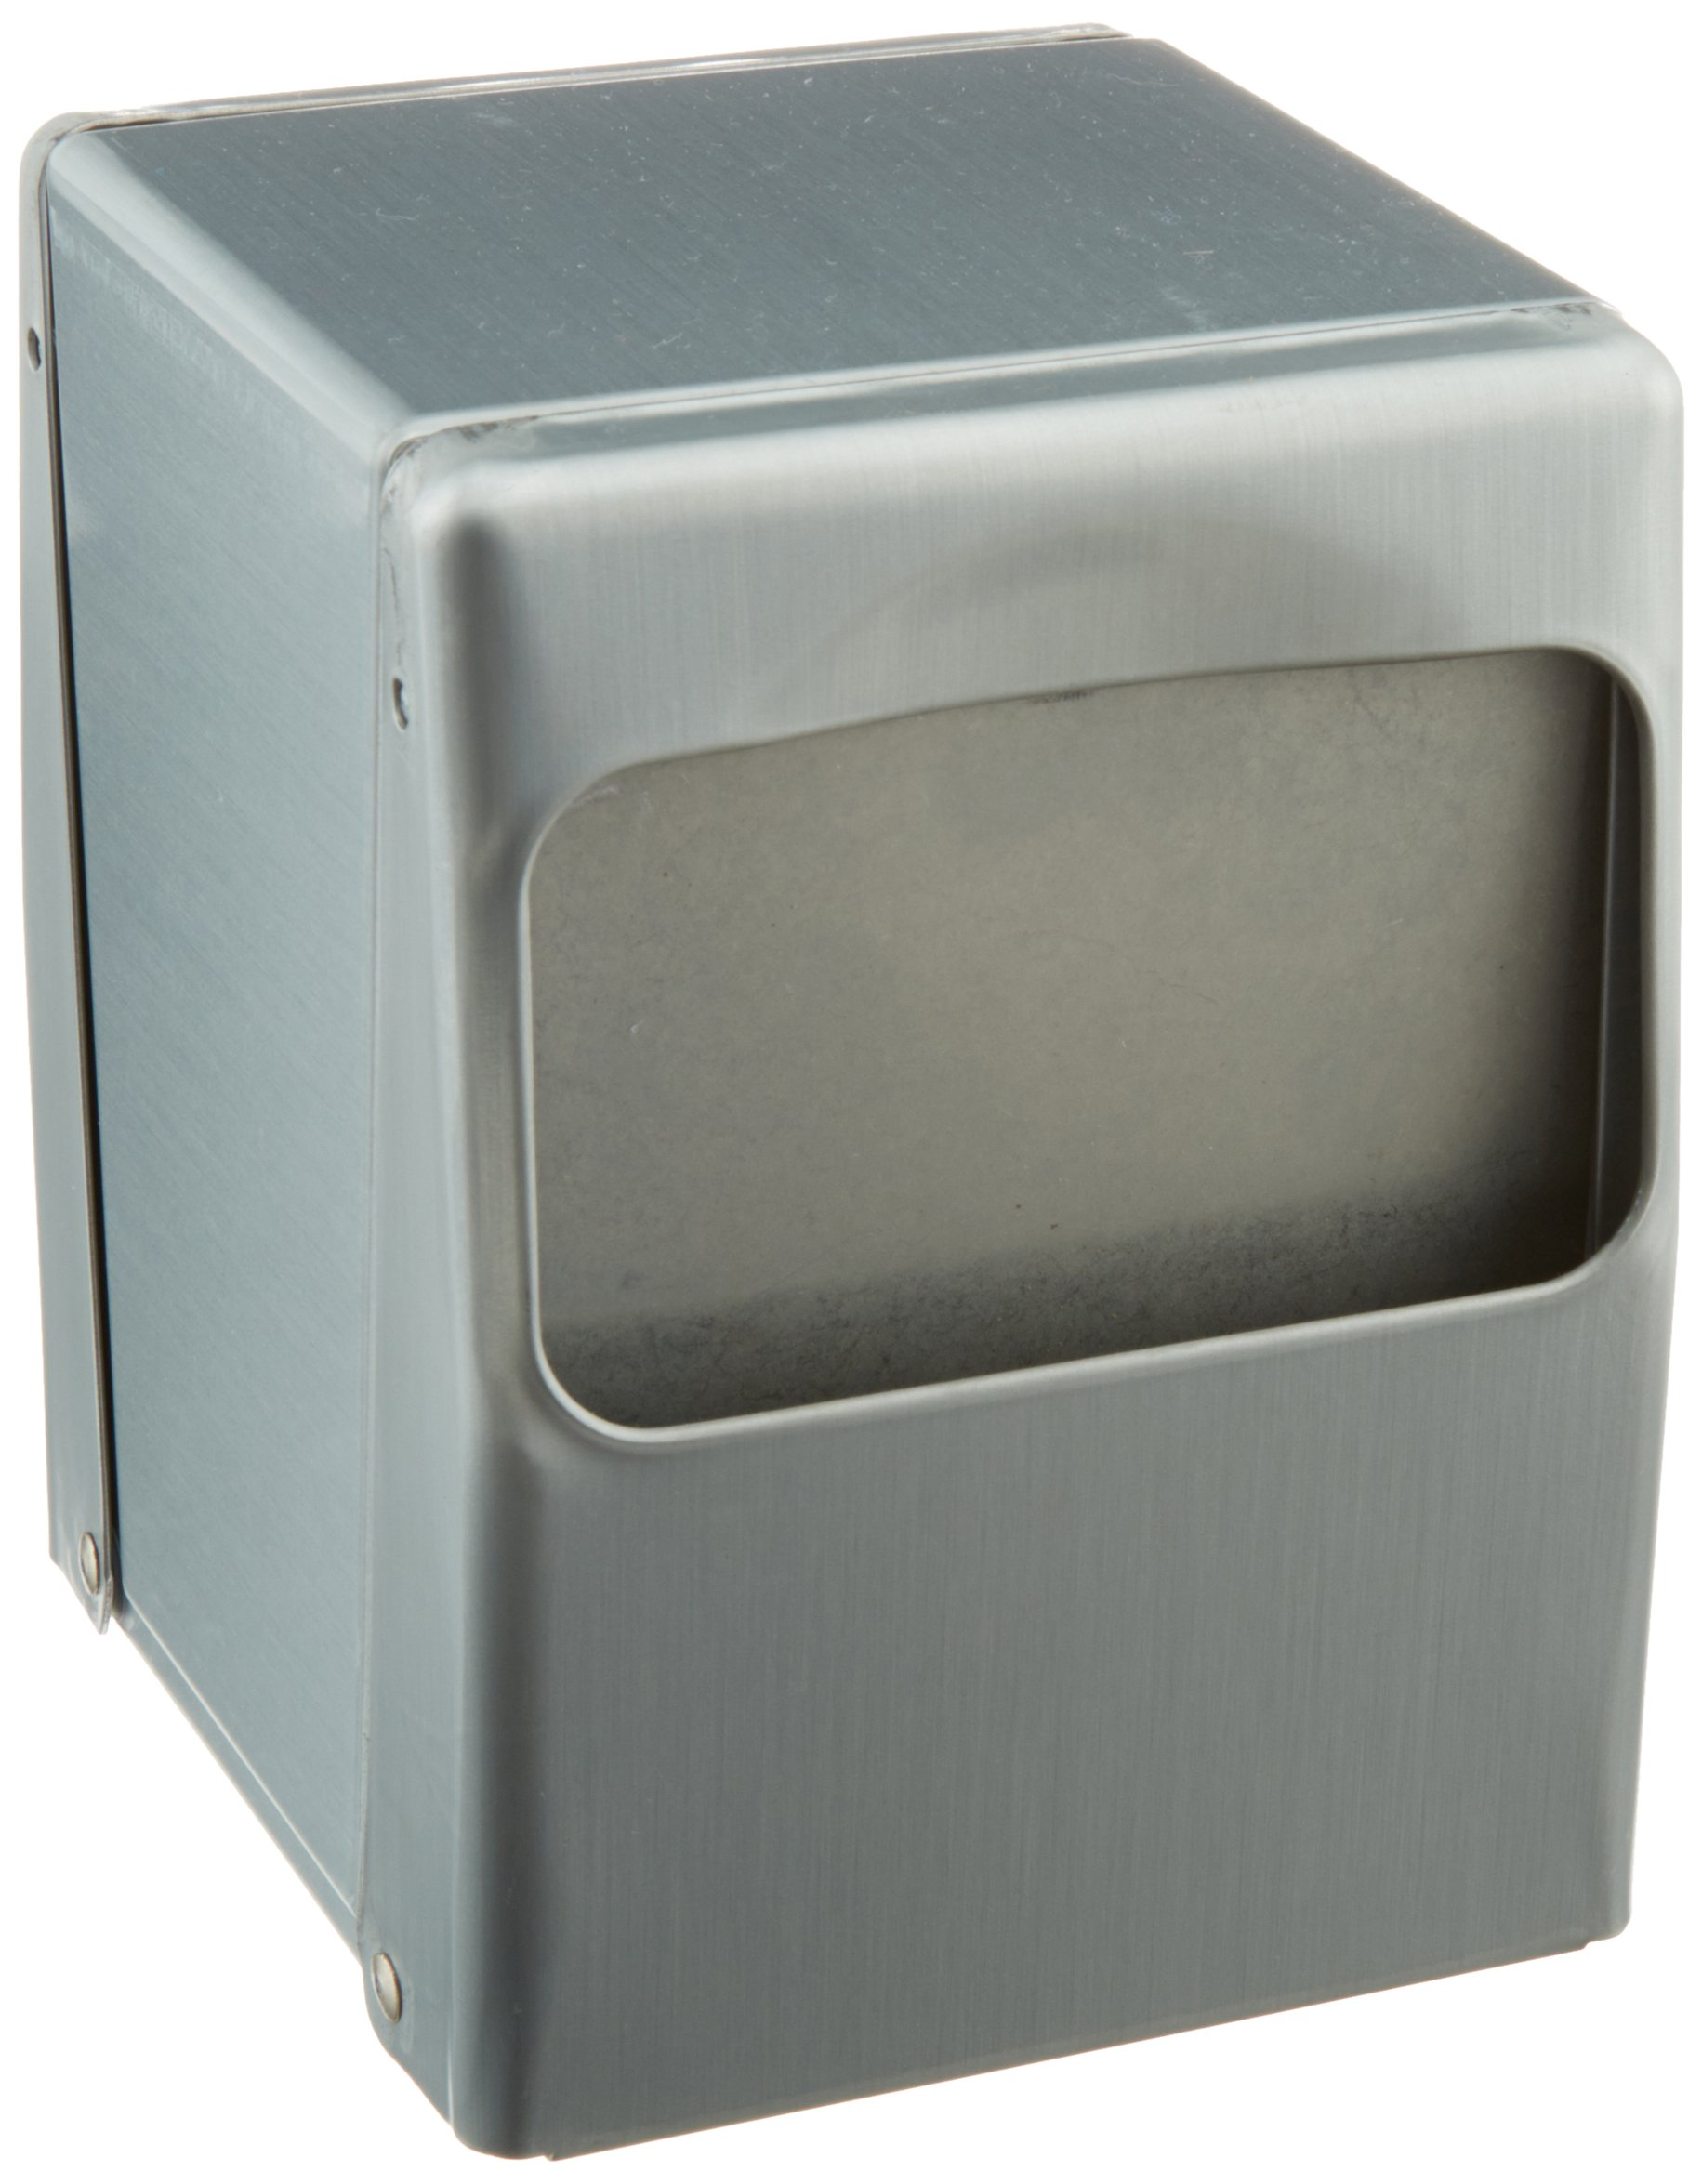 Impact 1045 Steel Lowfold Table Top Napkin Dispenser, 4-3/4'' Length x 4'' Width x 5-1/2'' Height, Brushed Steel (Case of 12) by Impact Products (Image #1)